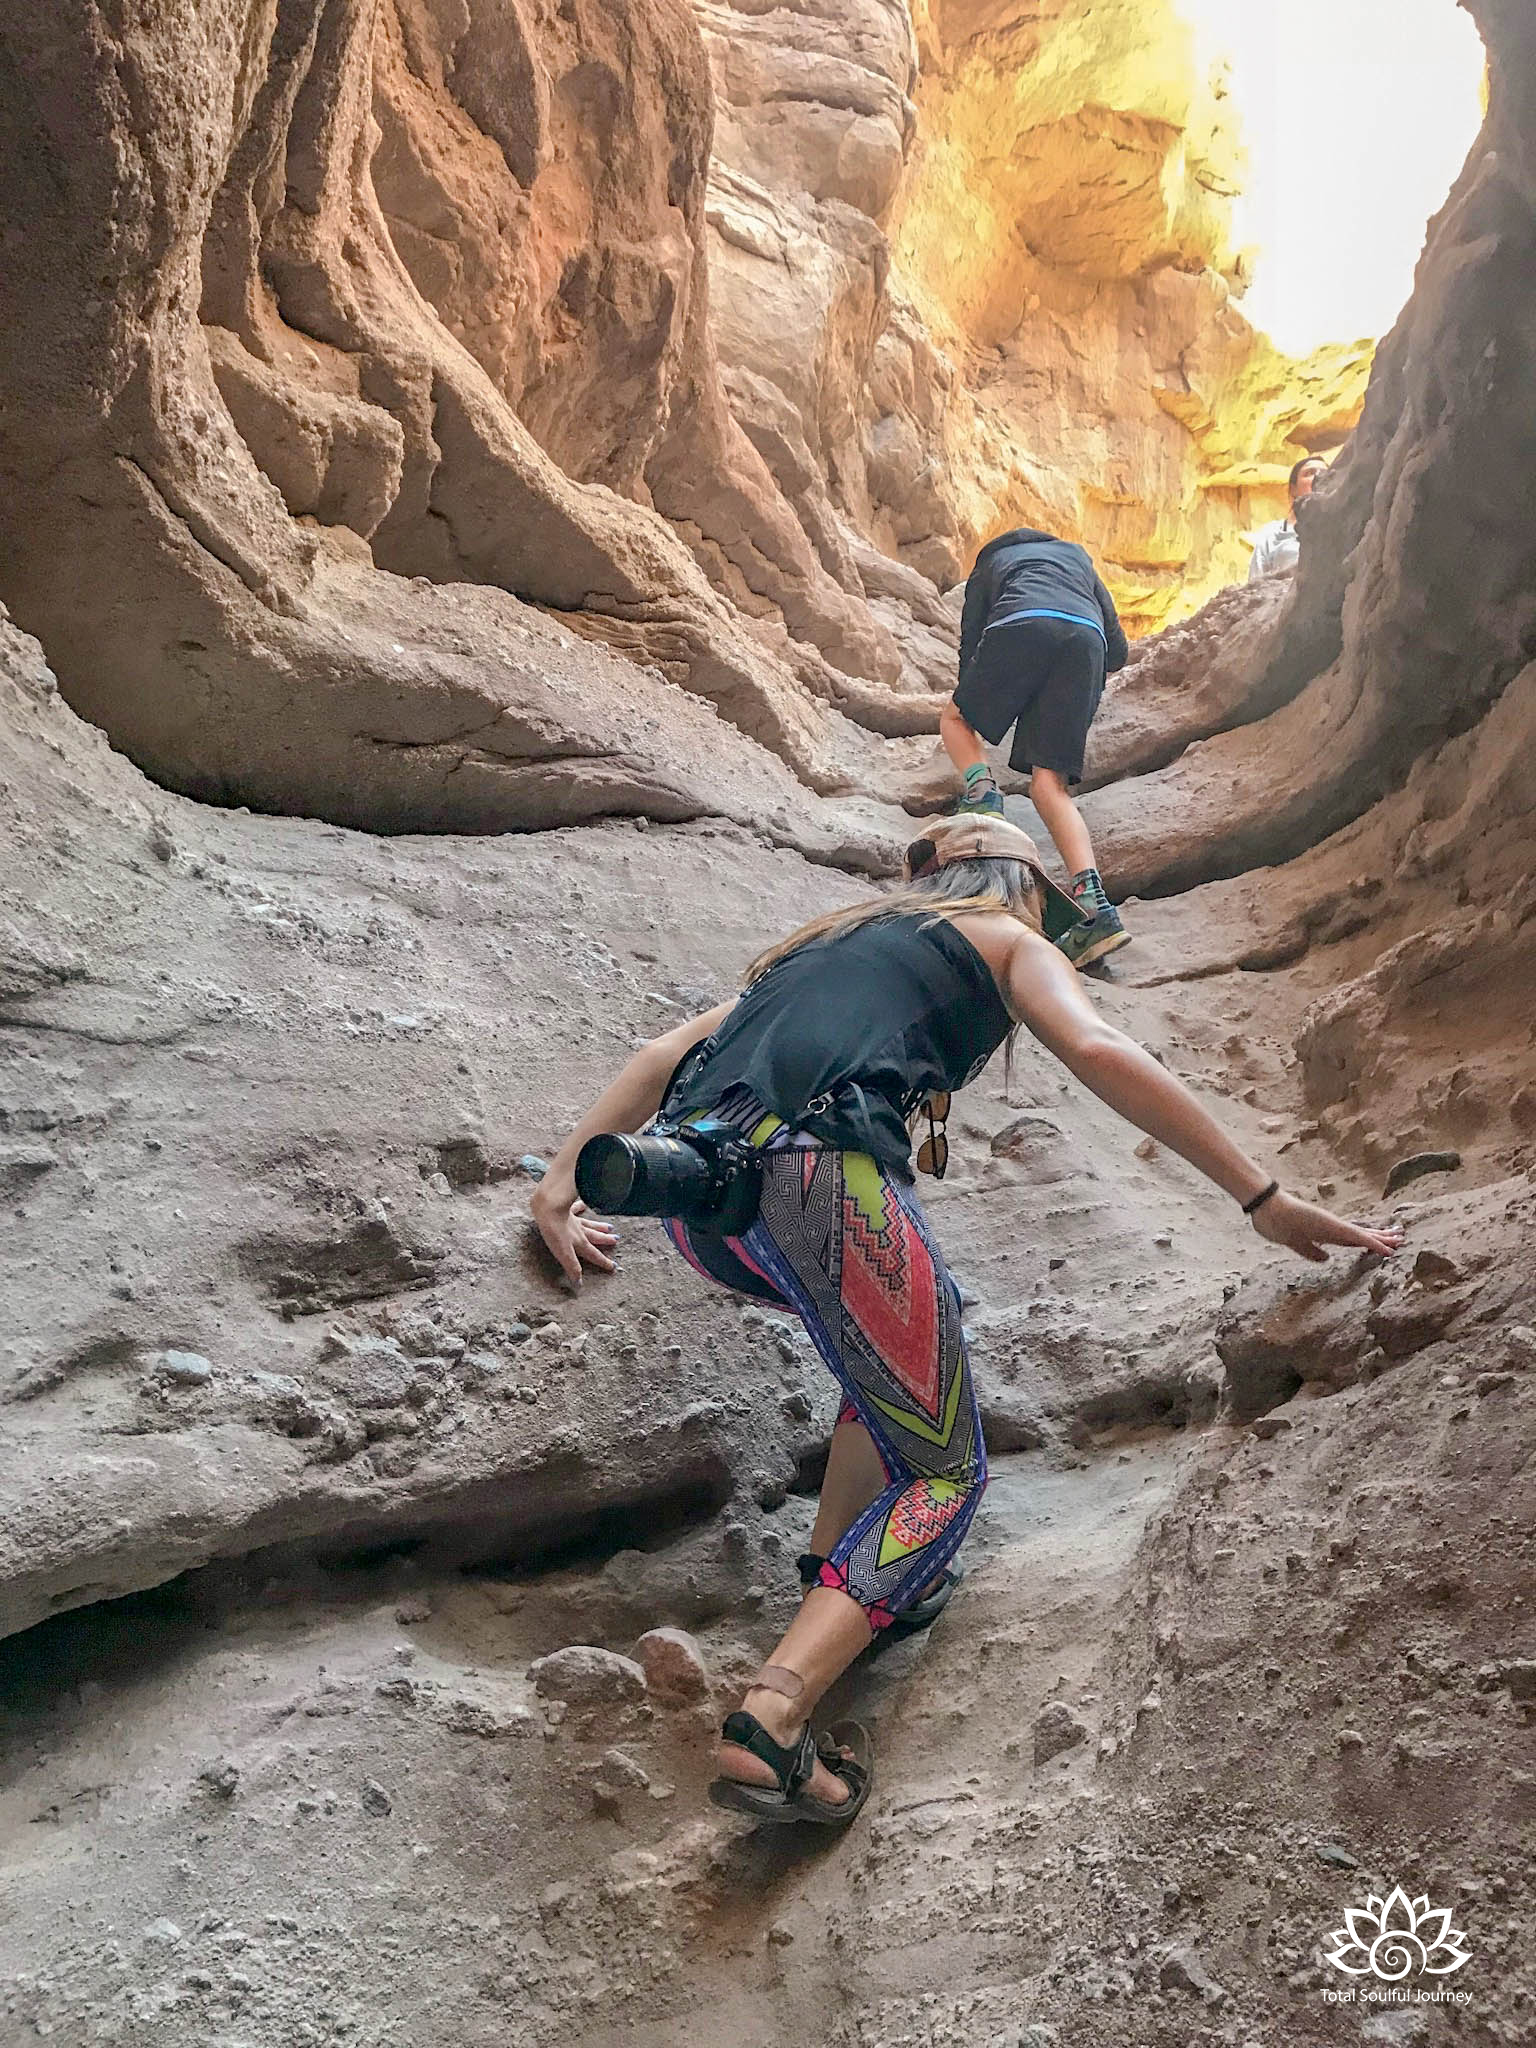 Out door adventures with your children opens the door to communication as well as builds trust.